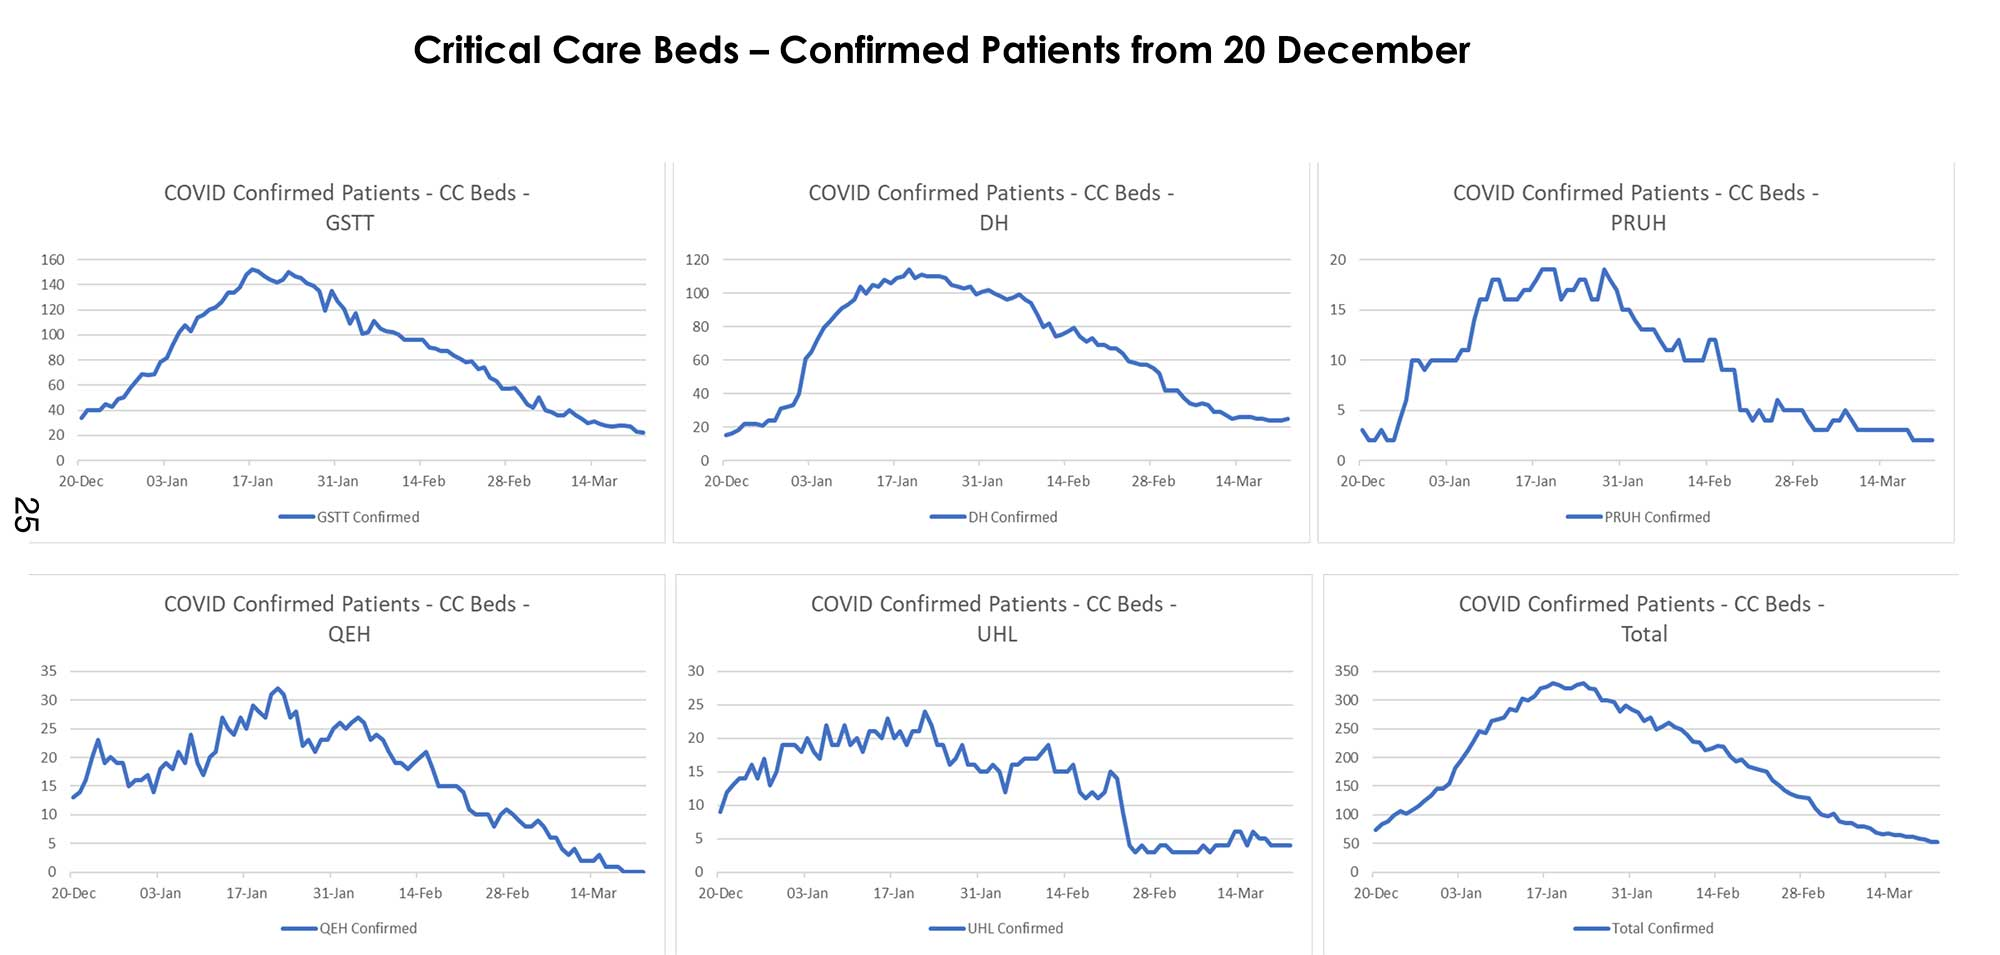 Critical care beds